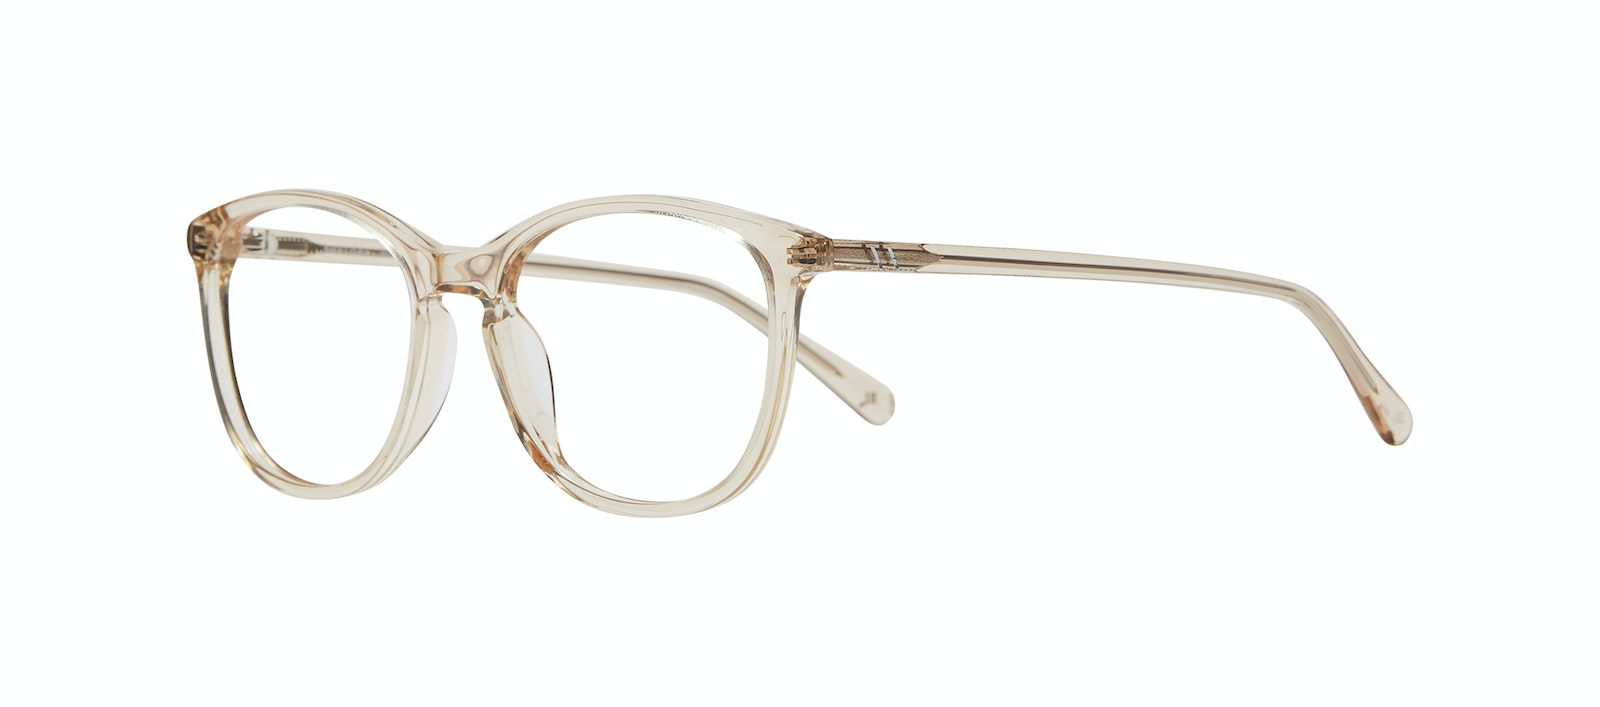 Affordable Fashion Glasses Rectangle Square Round Eyeglasses Women Nadine M Prosecco Tilt